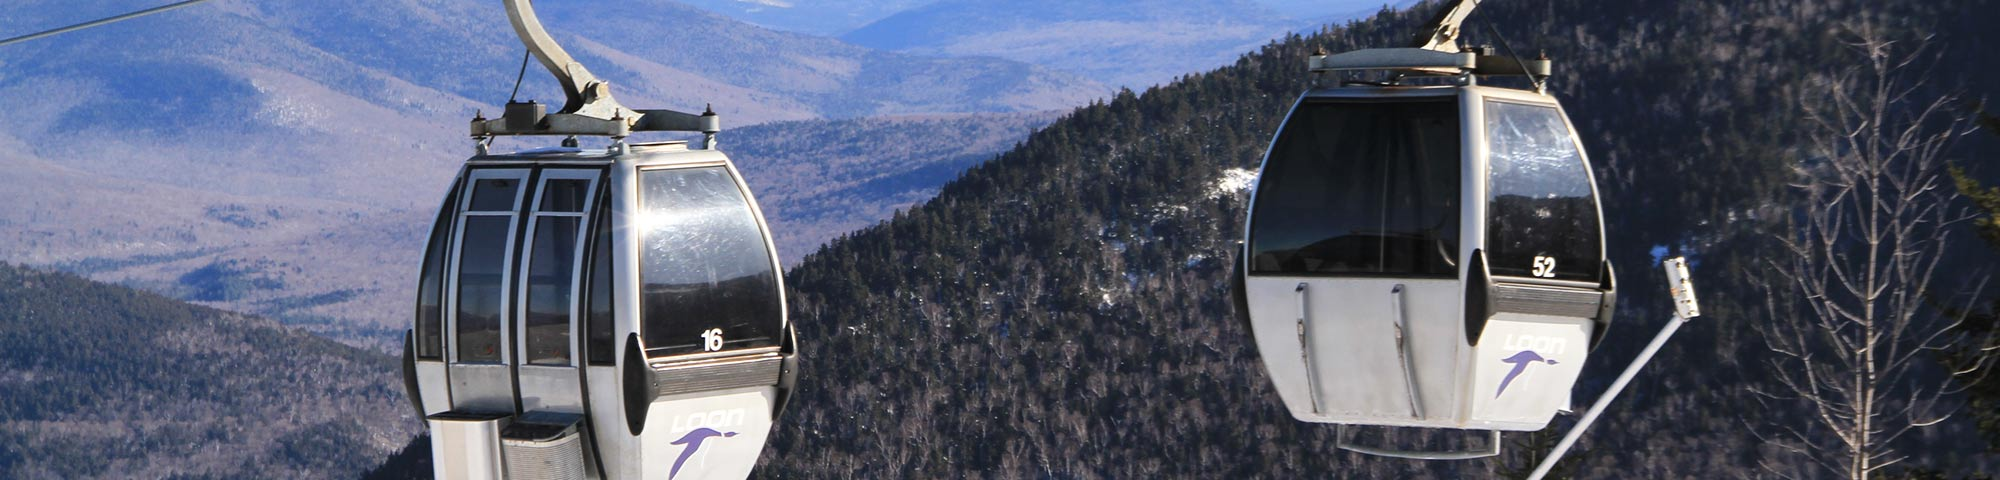 best of loon mountain 2018/19   packages & top tips - snowpak